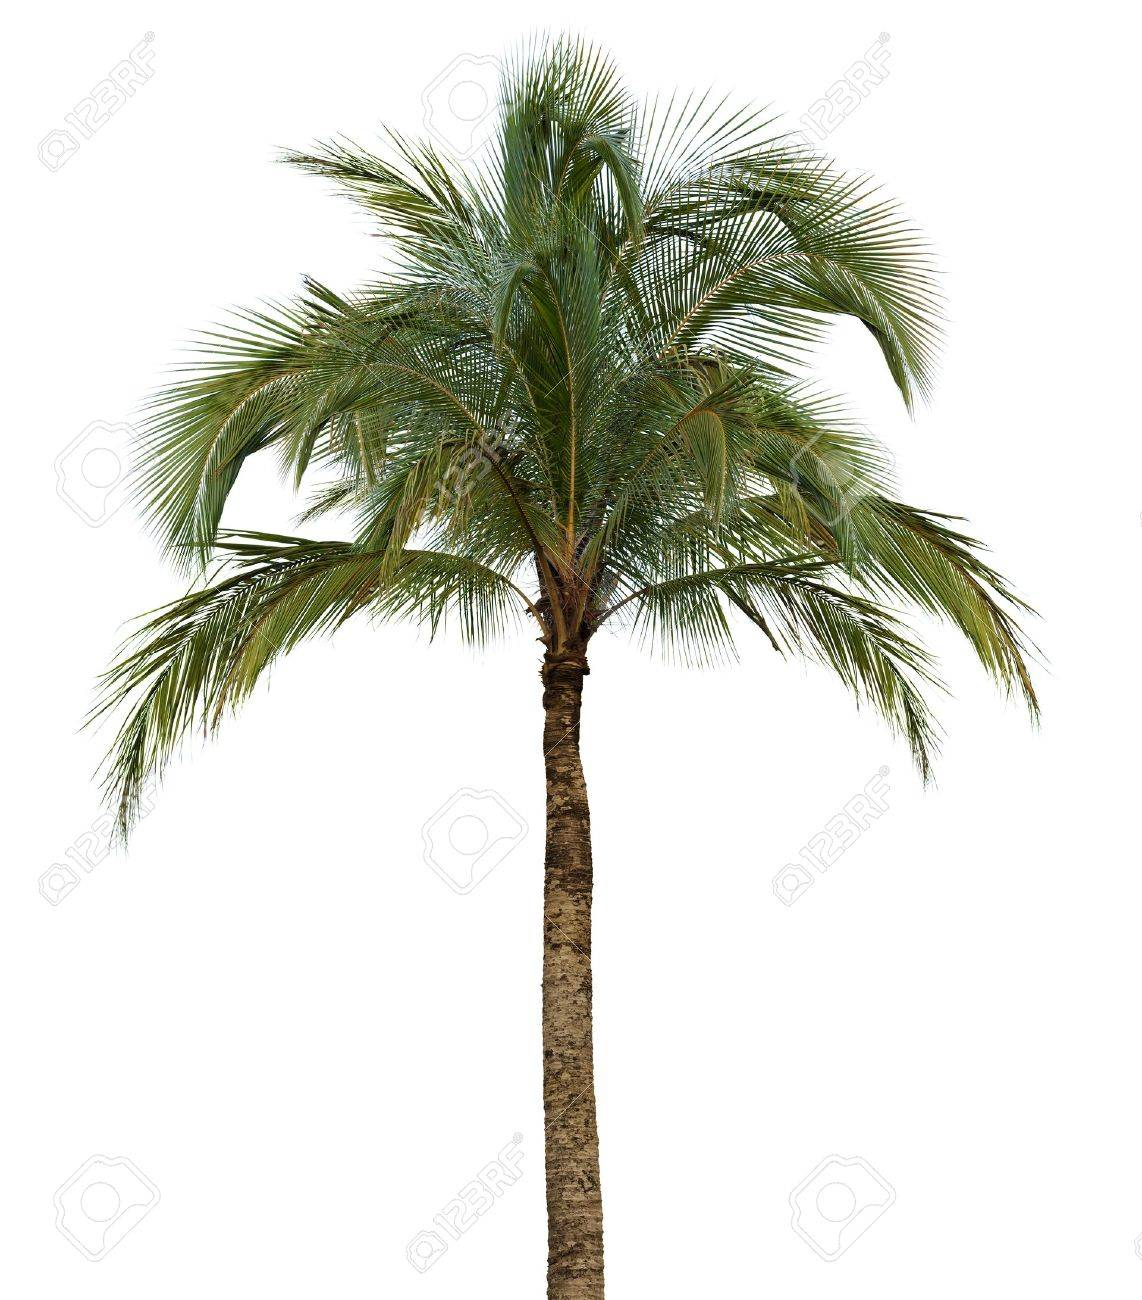 Coconut palm tree isolated on white background without fruit - 19743660